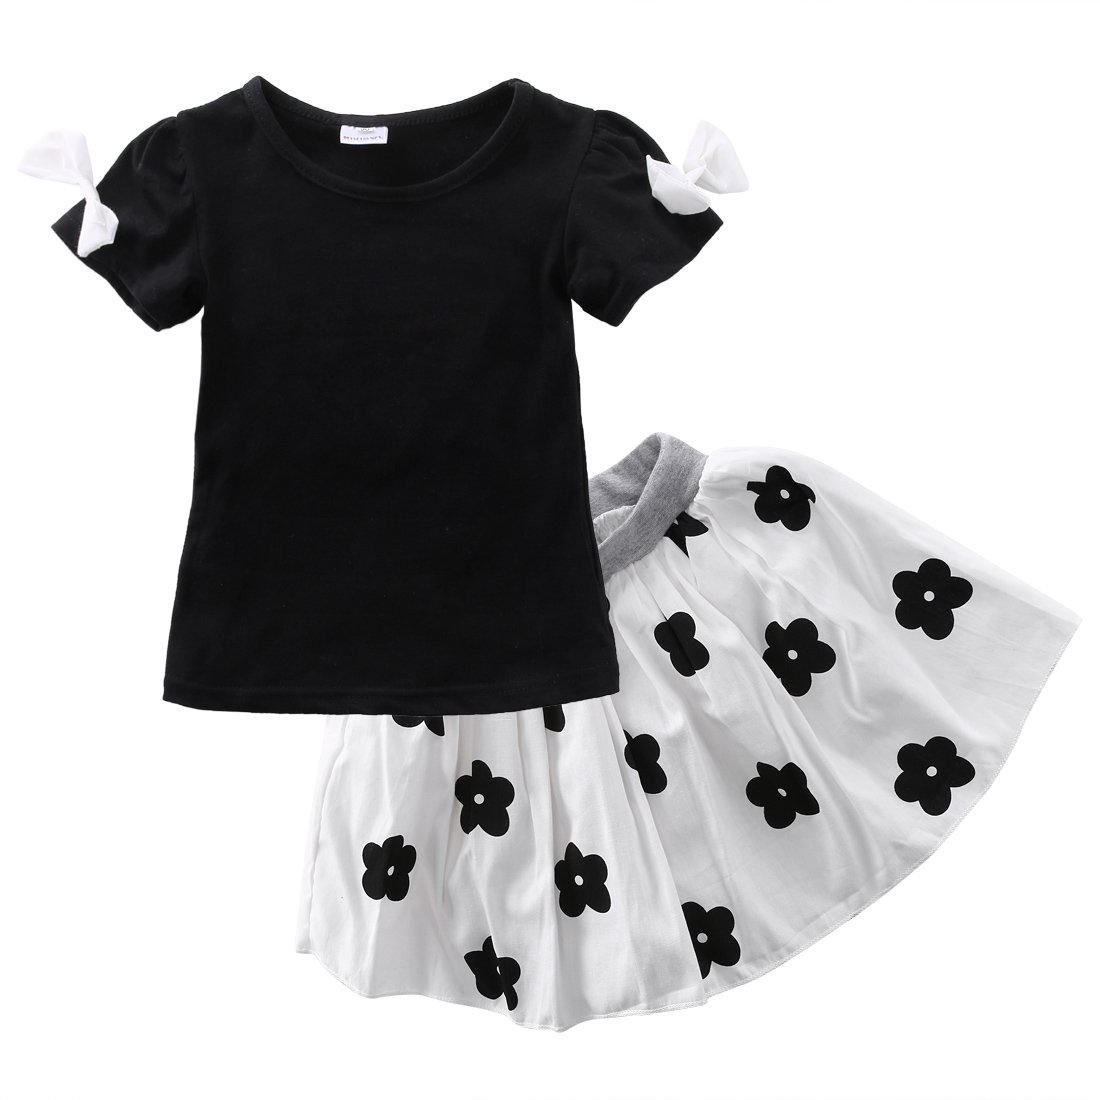 Little Girls Short Sleeve Bowknot T-shirt and Flower Pleated Skirt Outfit